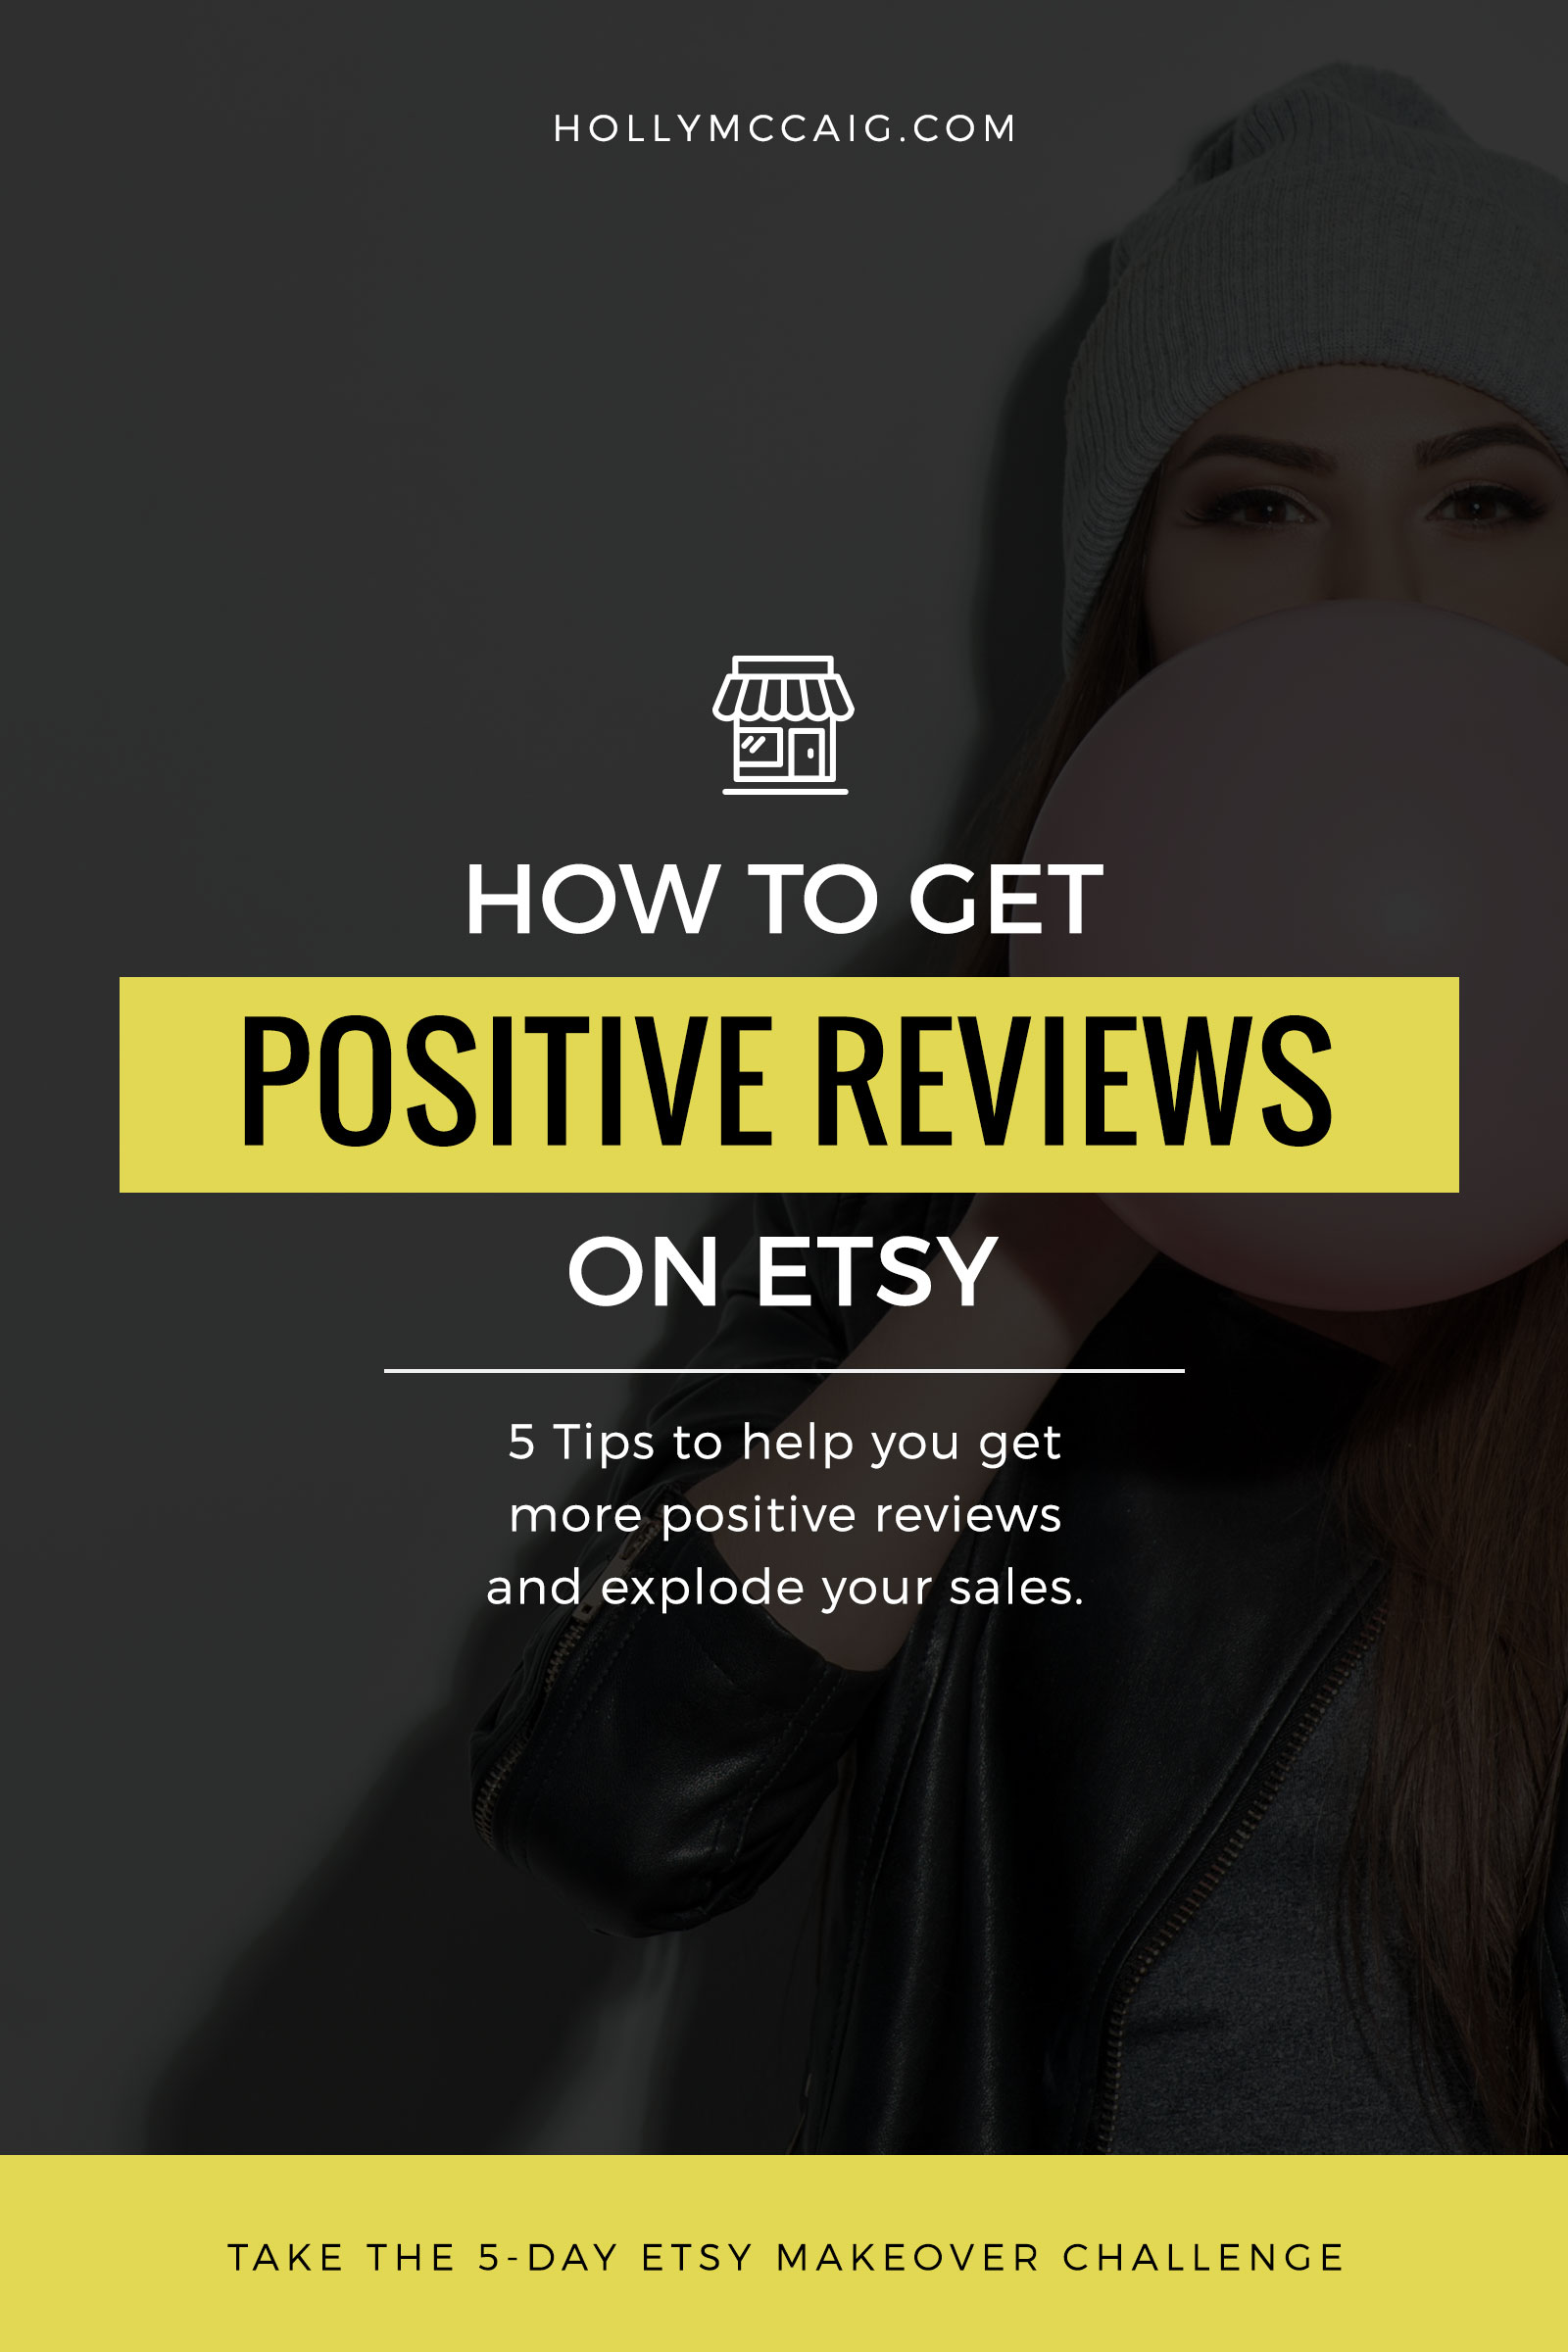 Hey Etsy seller, are you wondering how to get reviews on Etsy that matter? Here are five ways to improve your positive reviews and get you more sales.